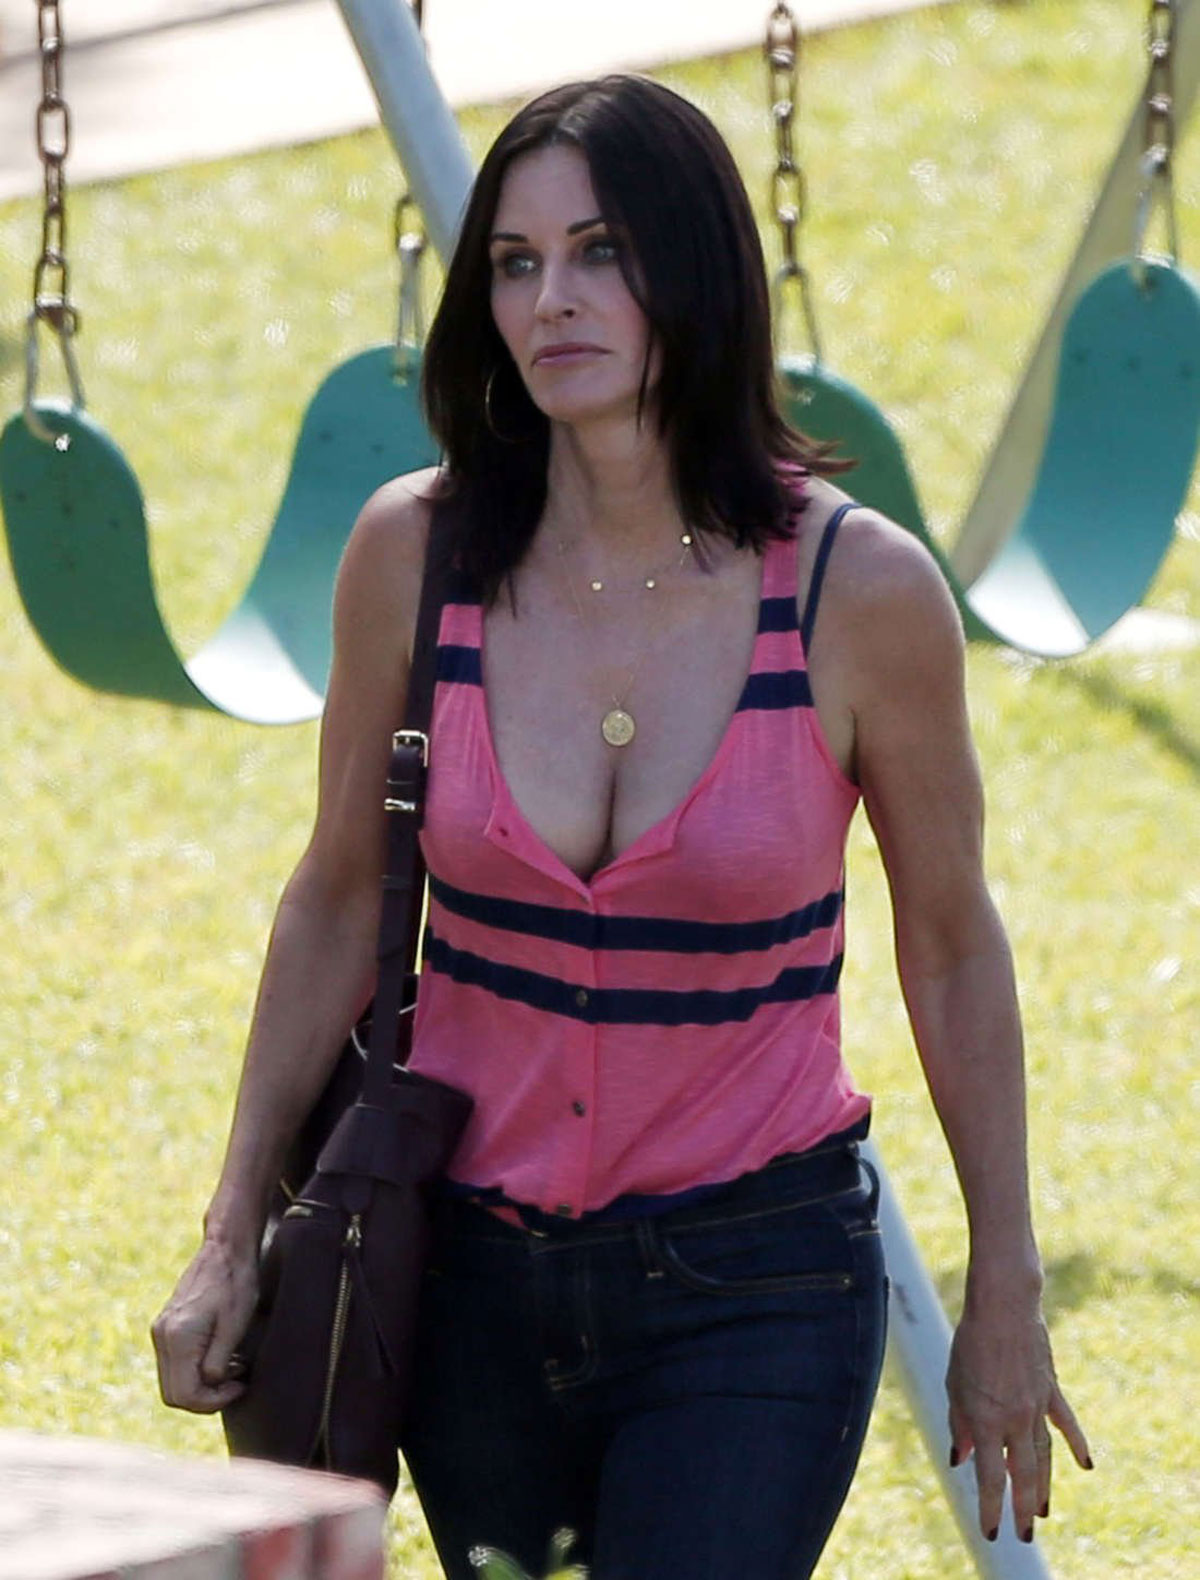 courteney cox 1994courteney cox 2016, courteney cox 2017, courteney cox and matthew perry, courteney cox daughter, courteney cox инстаграм, courteney cox 1994, courteney cox vk, courteney cox iron maidens, courteney cox instagram official, courteney cox arquette friends, courteney cox dance, courteney cox and johnny mcdaid, courteney cox style dance, courteney cox movies, courteney cox age, courteney cox gif, courteney cox net worth, courteney cox beautiful, courteney cox family, courteney cox workout